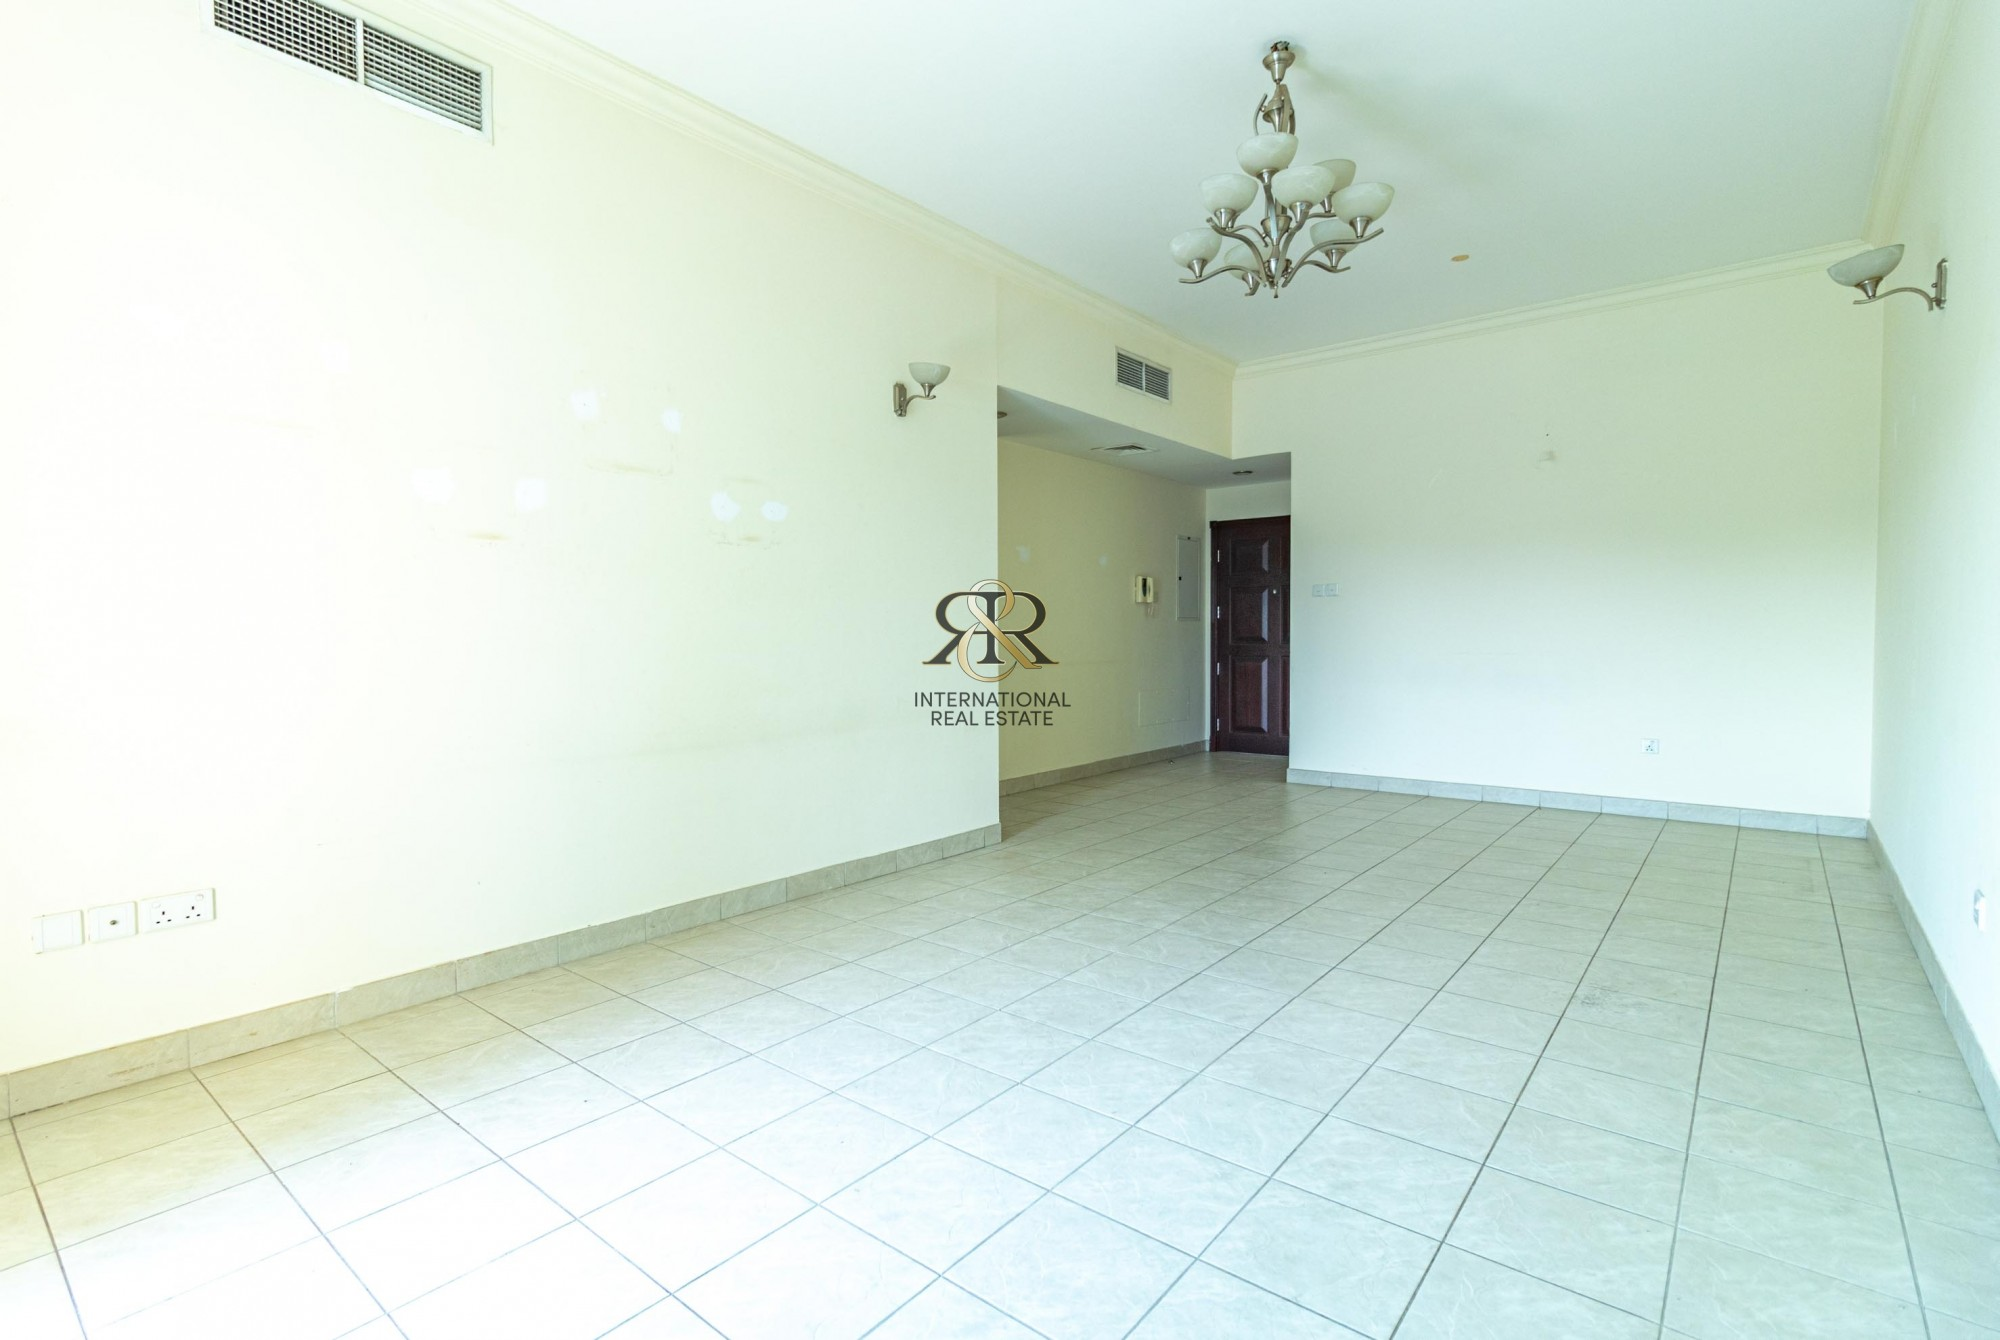 With 360 Video Tour | Spacious 2 Bedrooms with Balcony and Storage Room